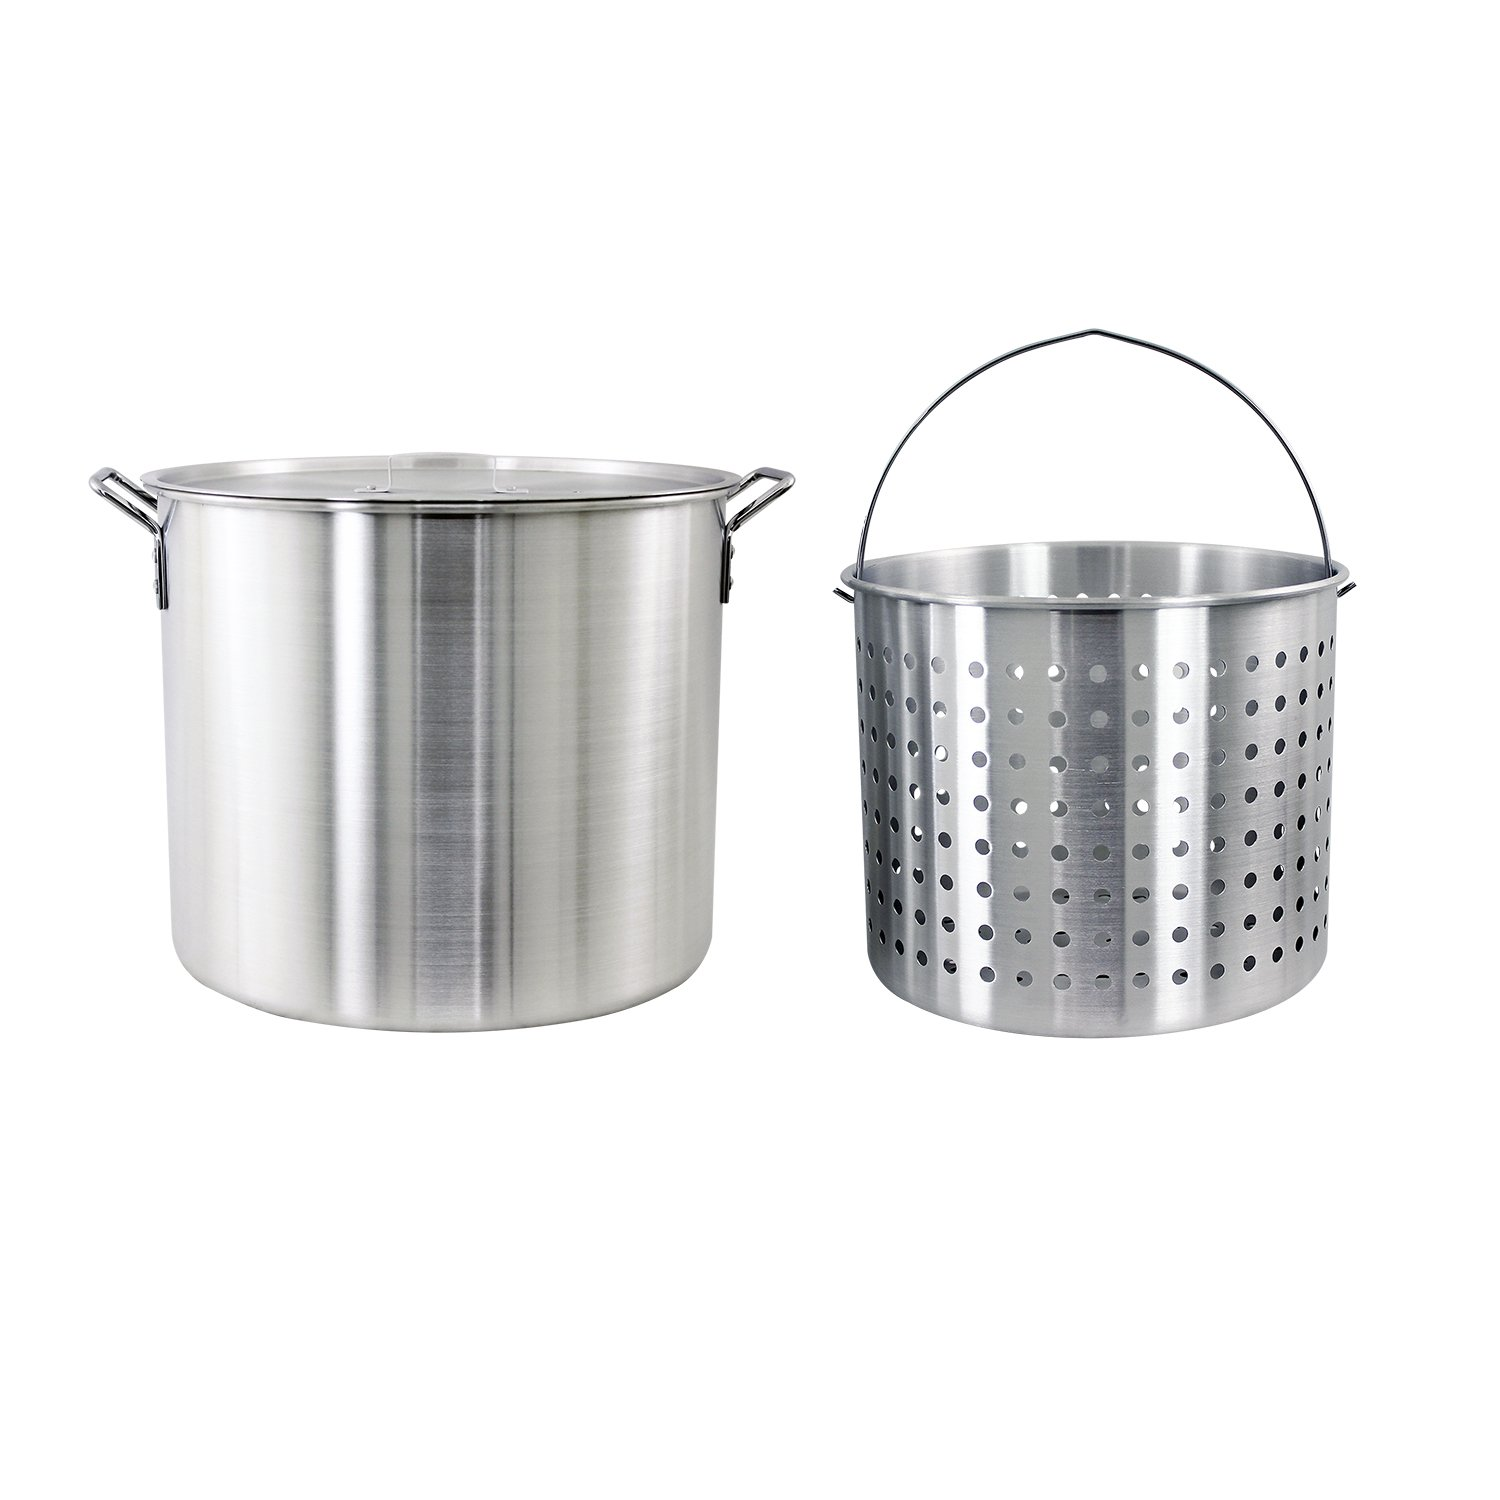 CHARD ASP60, Aluminum Stock Pot and Strainer Basket Set, Silver, 60 quart